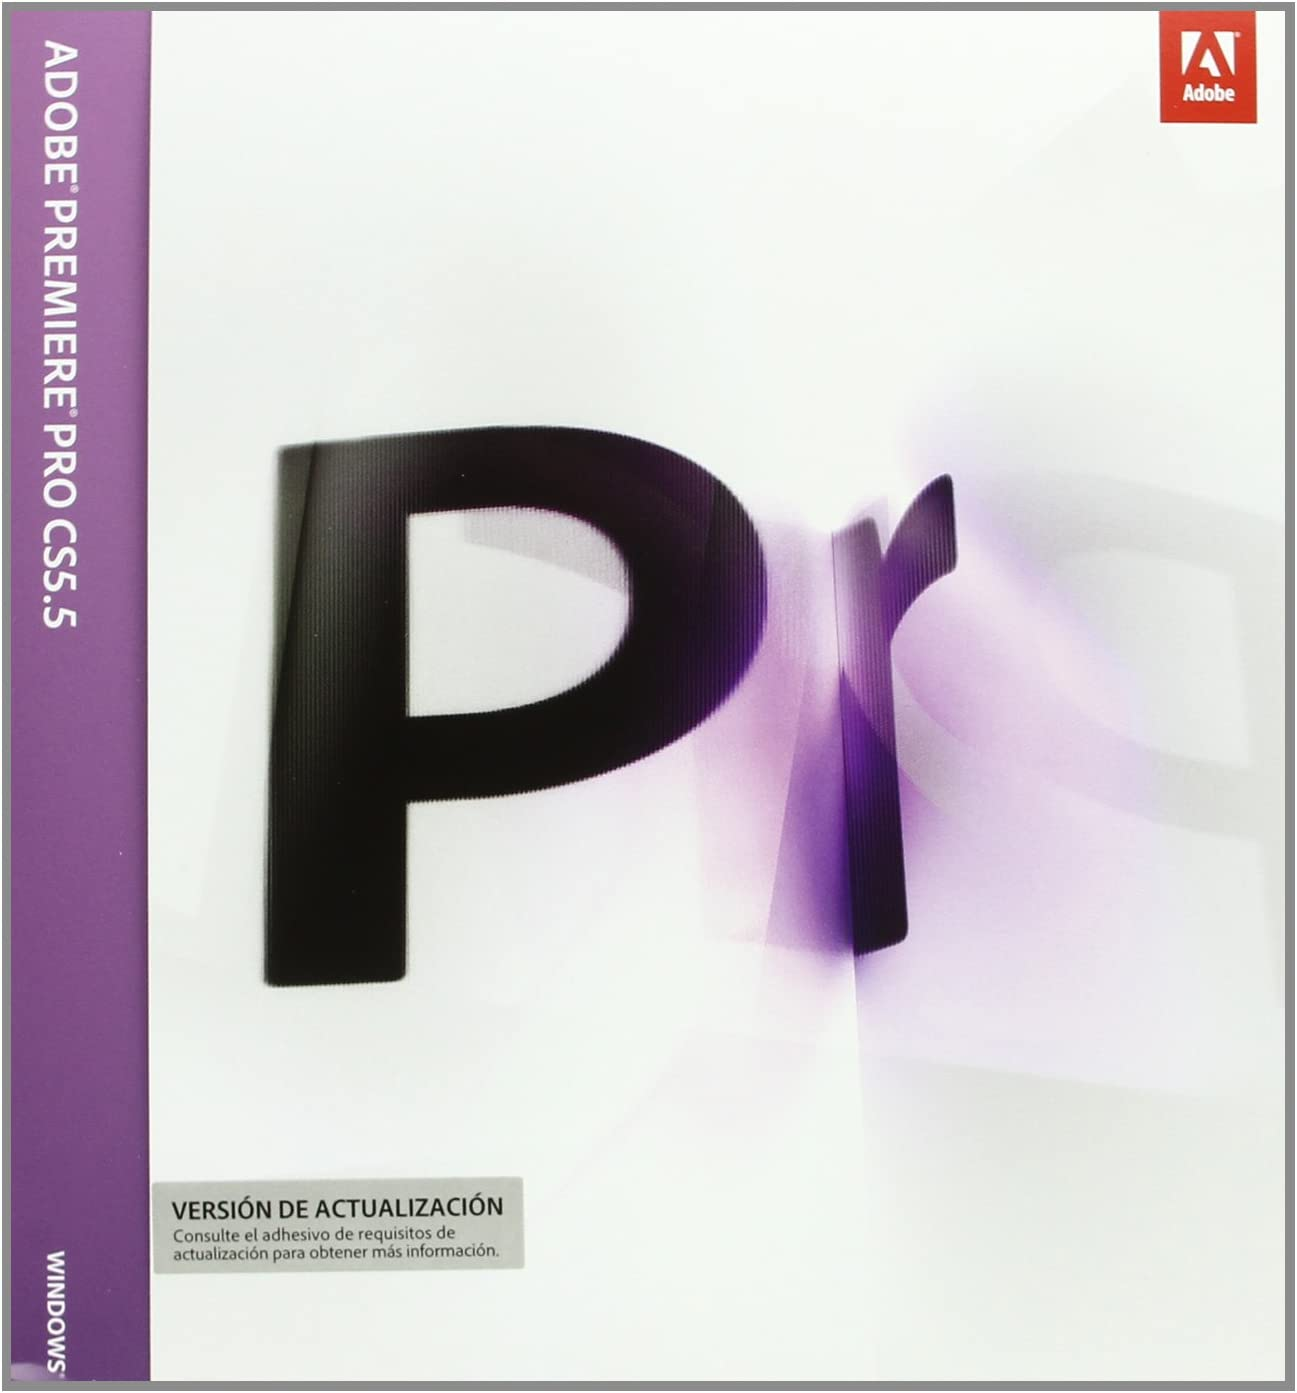 Adobe Premiere Pro Creative Suite CS5.5